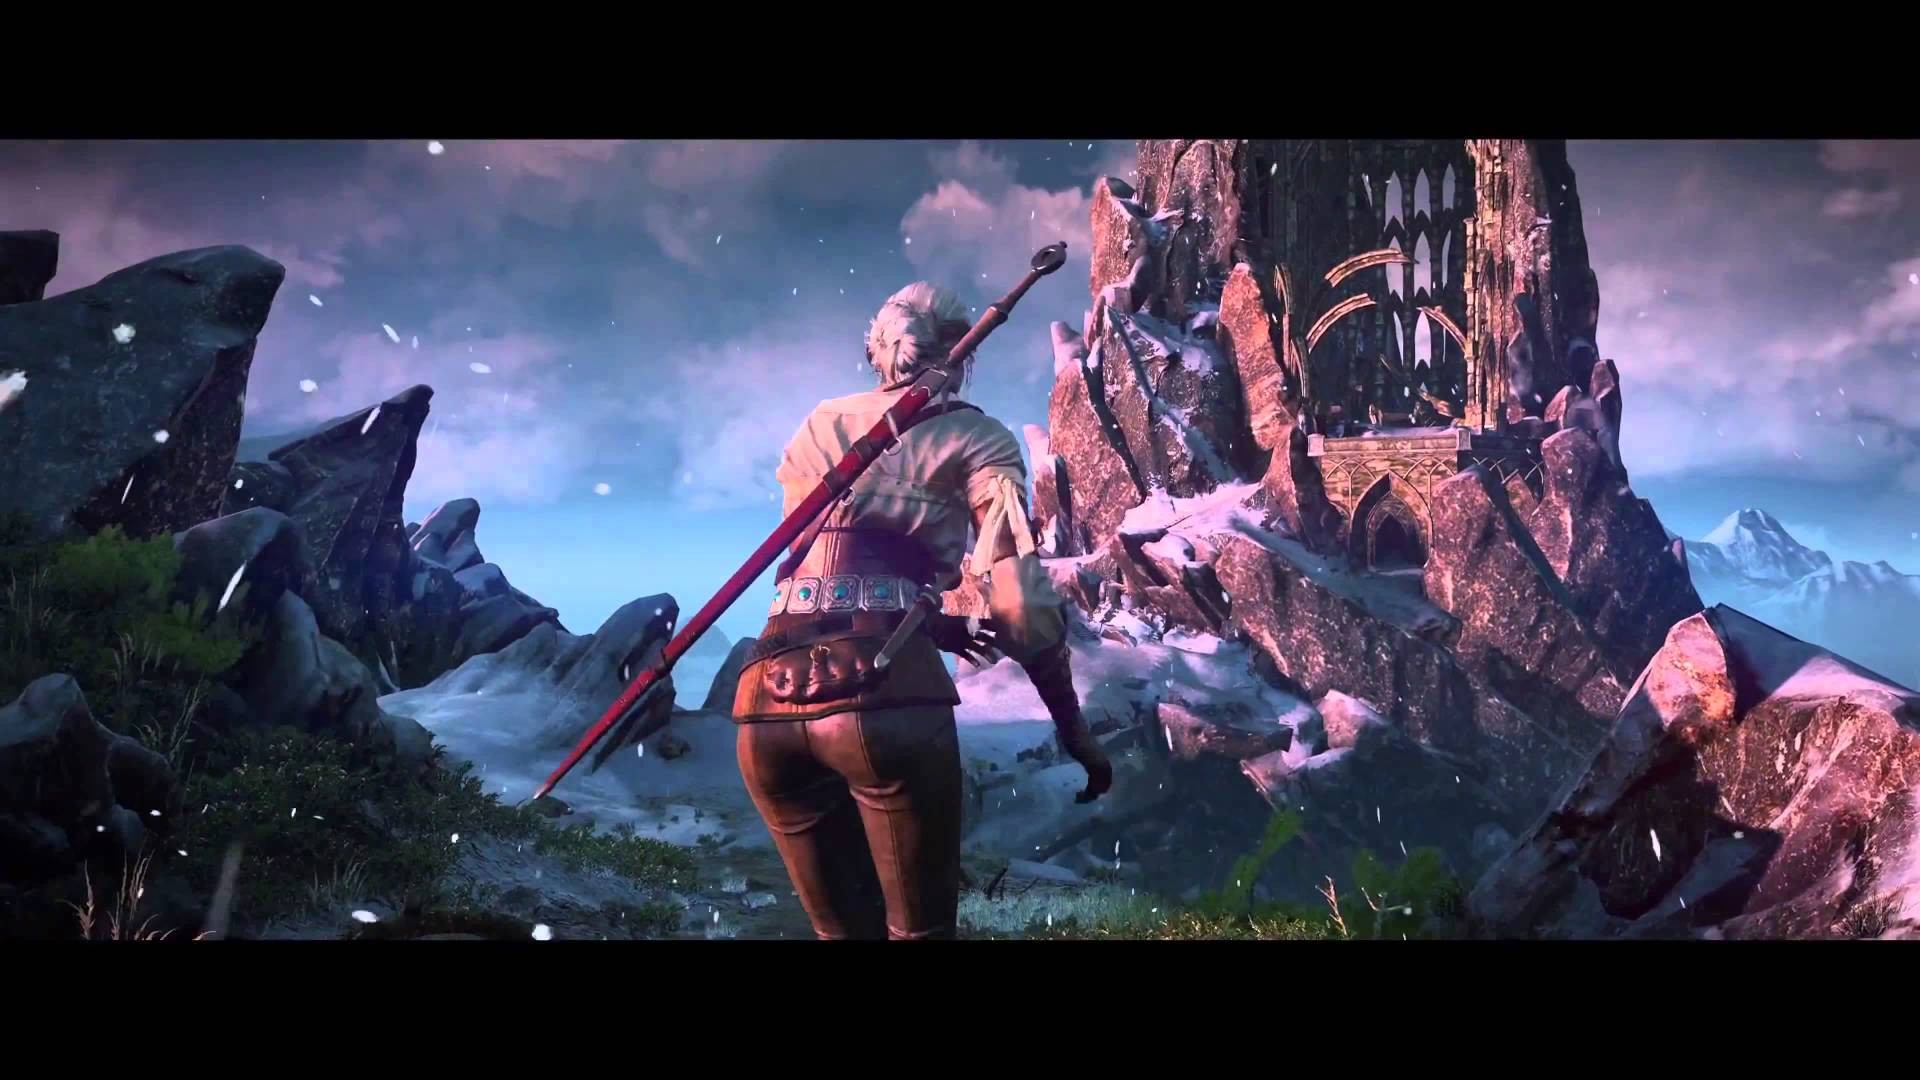 Witcher 3 Wallpaper 4K ·① Download Free Wallpapers For